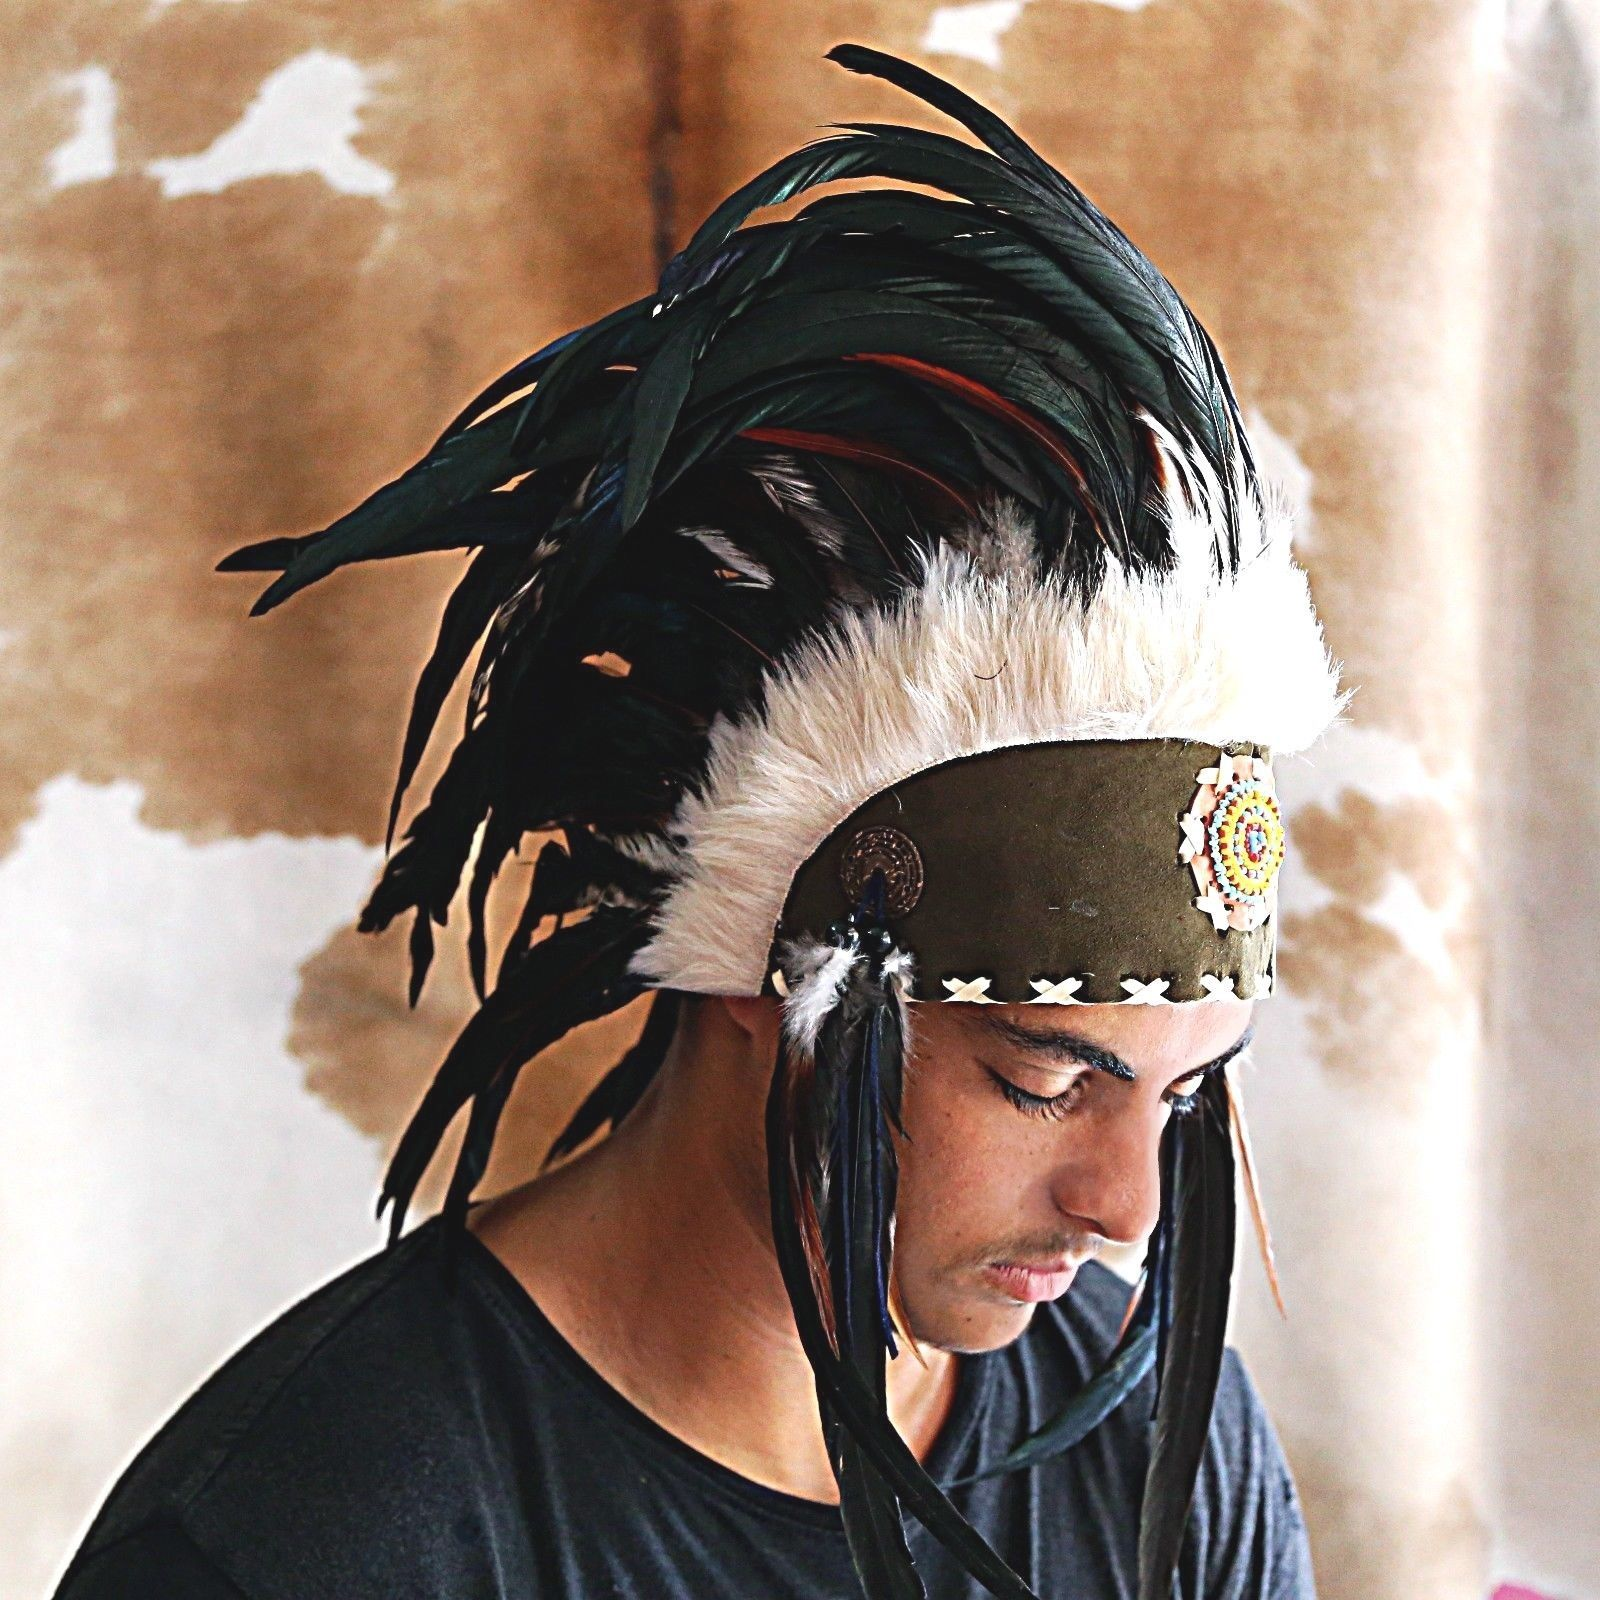 Indian Headdress Adult Native American Costume Feather Chieftain tribal pow wow